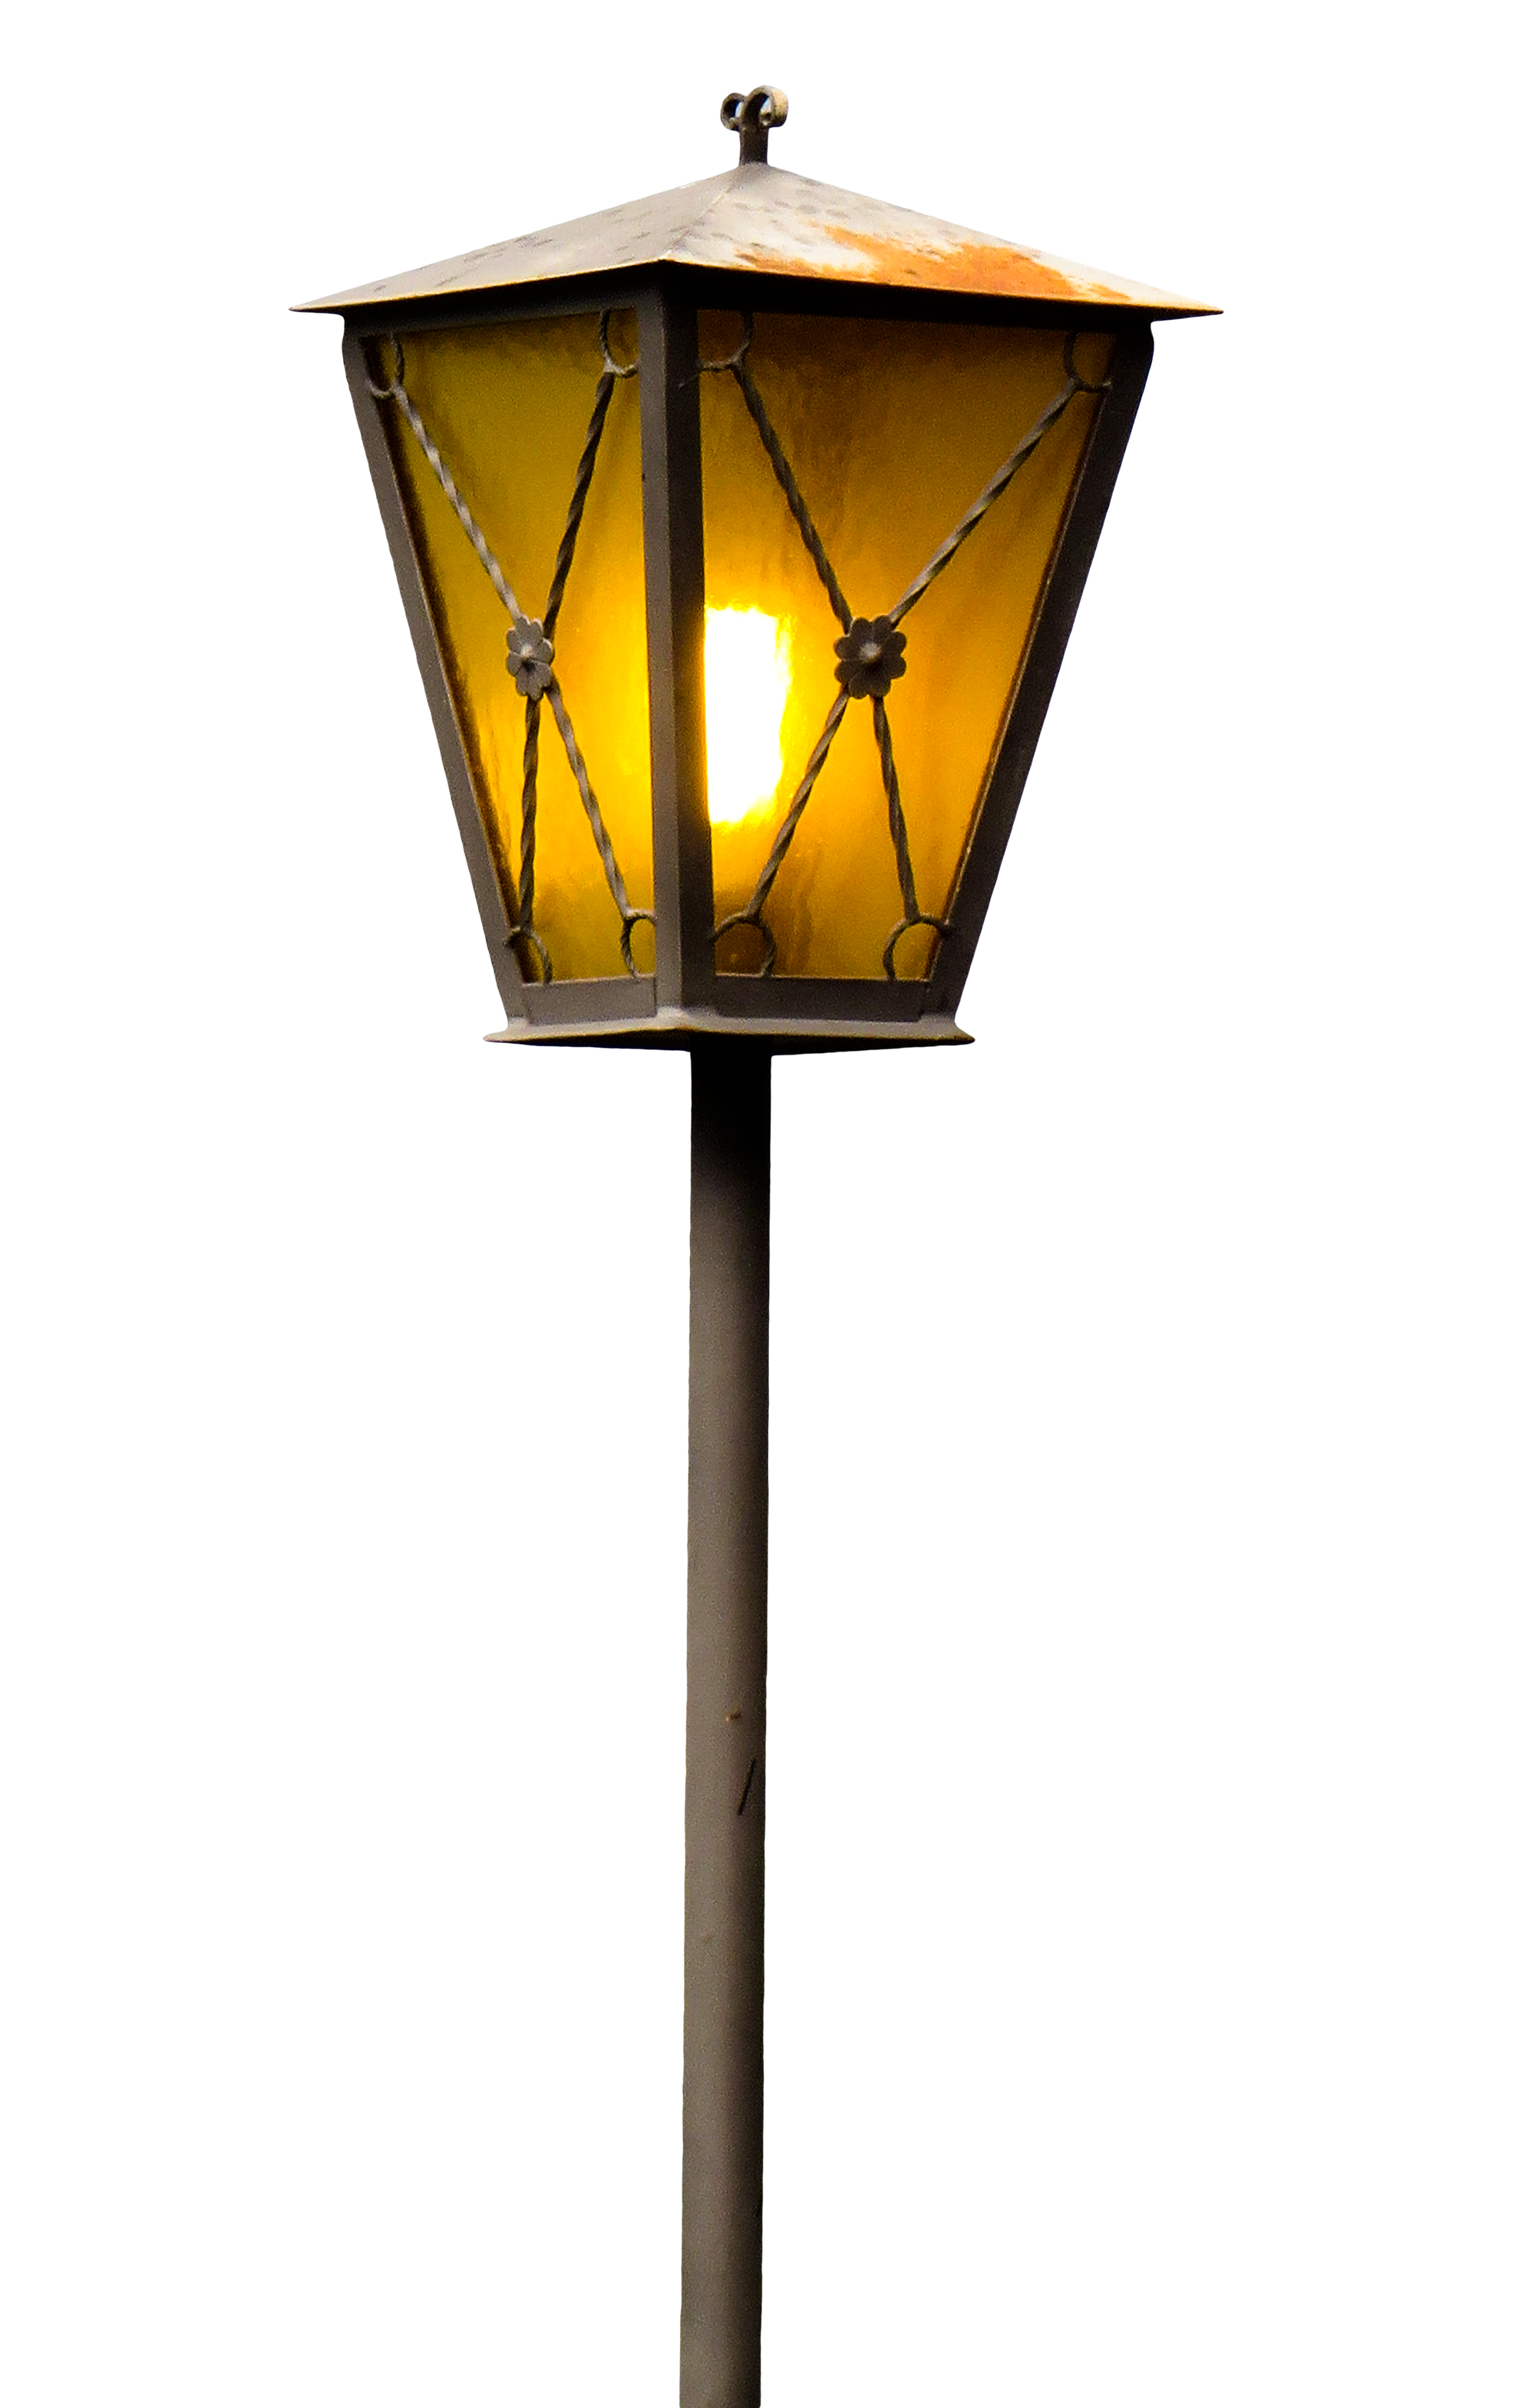 Old object in photo. Street lamp png png free